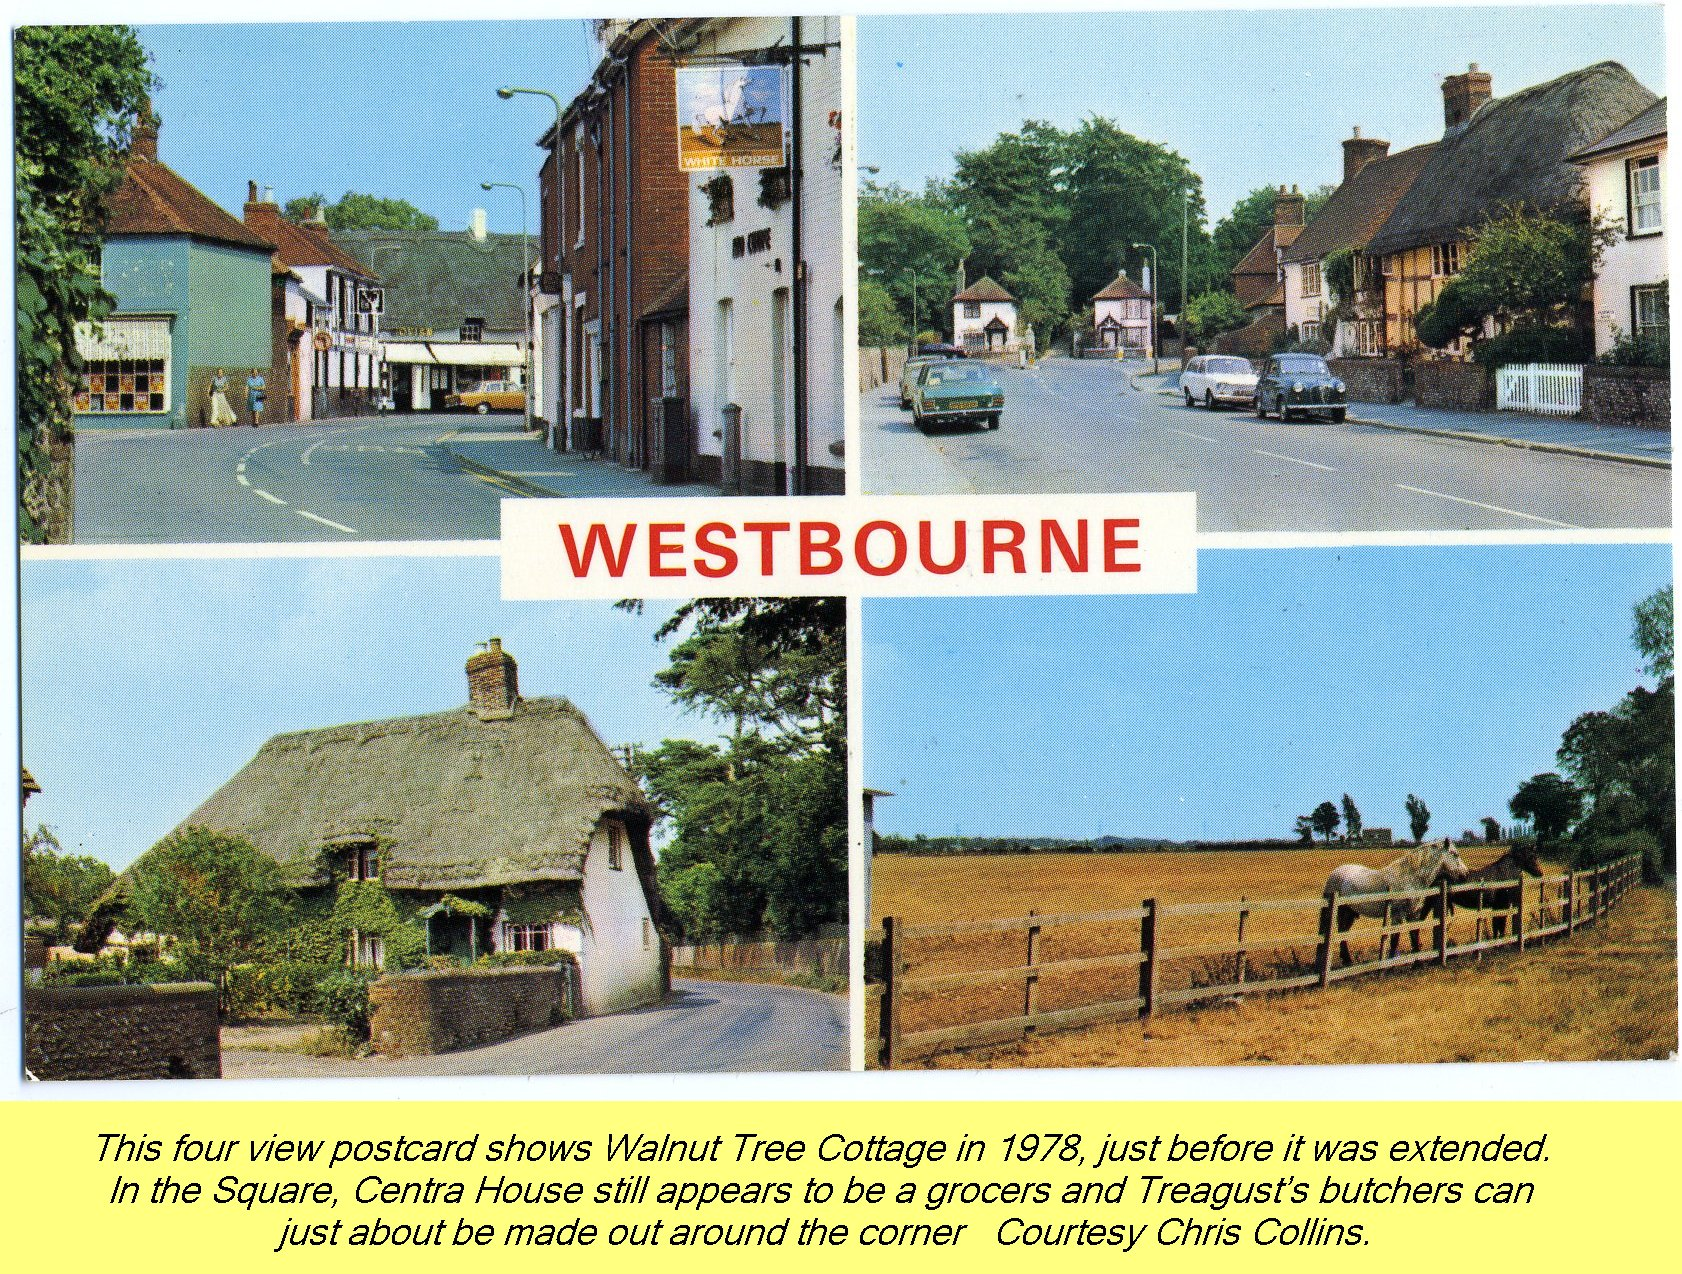 WESTBOURNE HISTORY PHOTO, POSTCARD, VIEWS, WALNUT TREE, CENTRA, TREAGUST